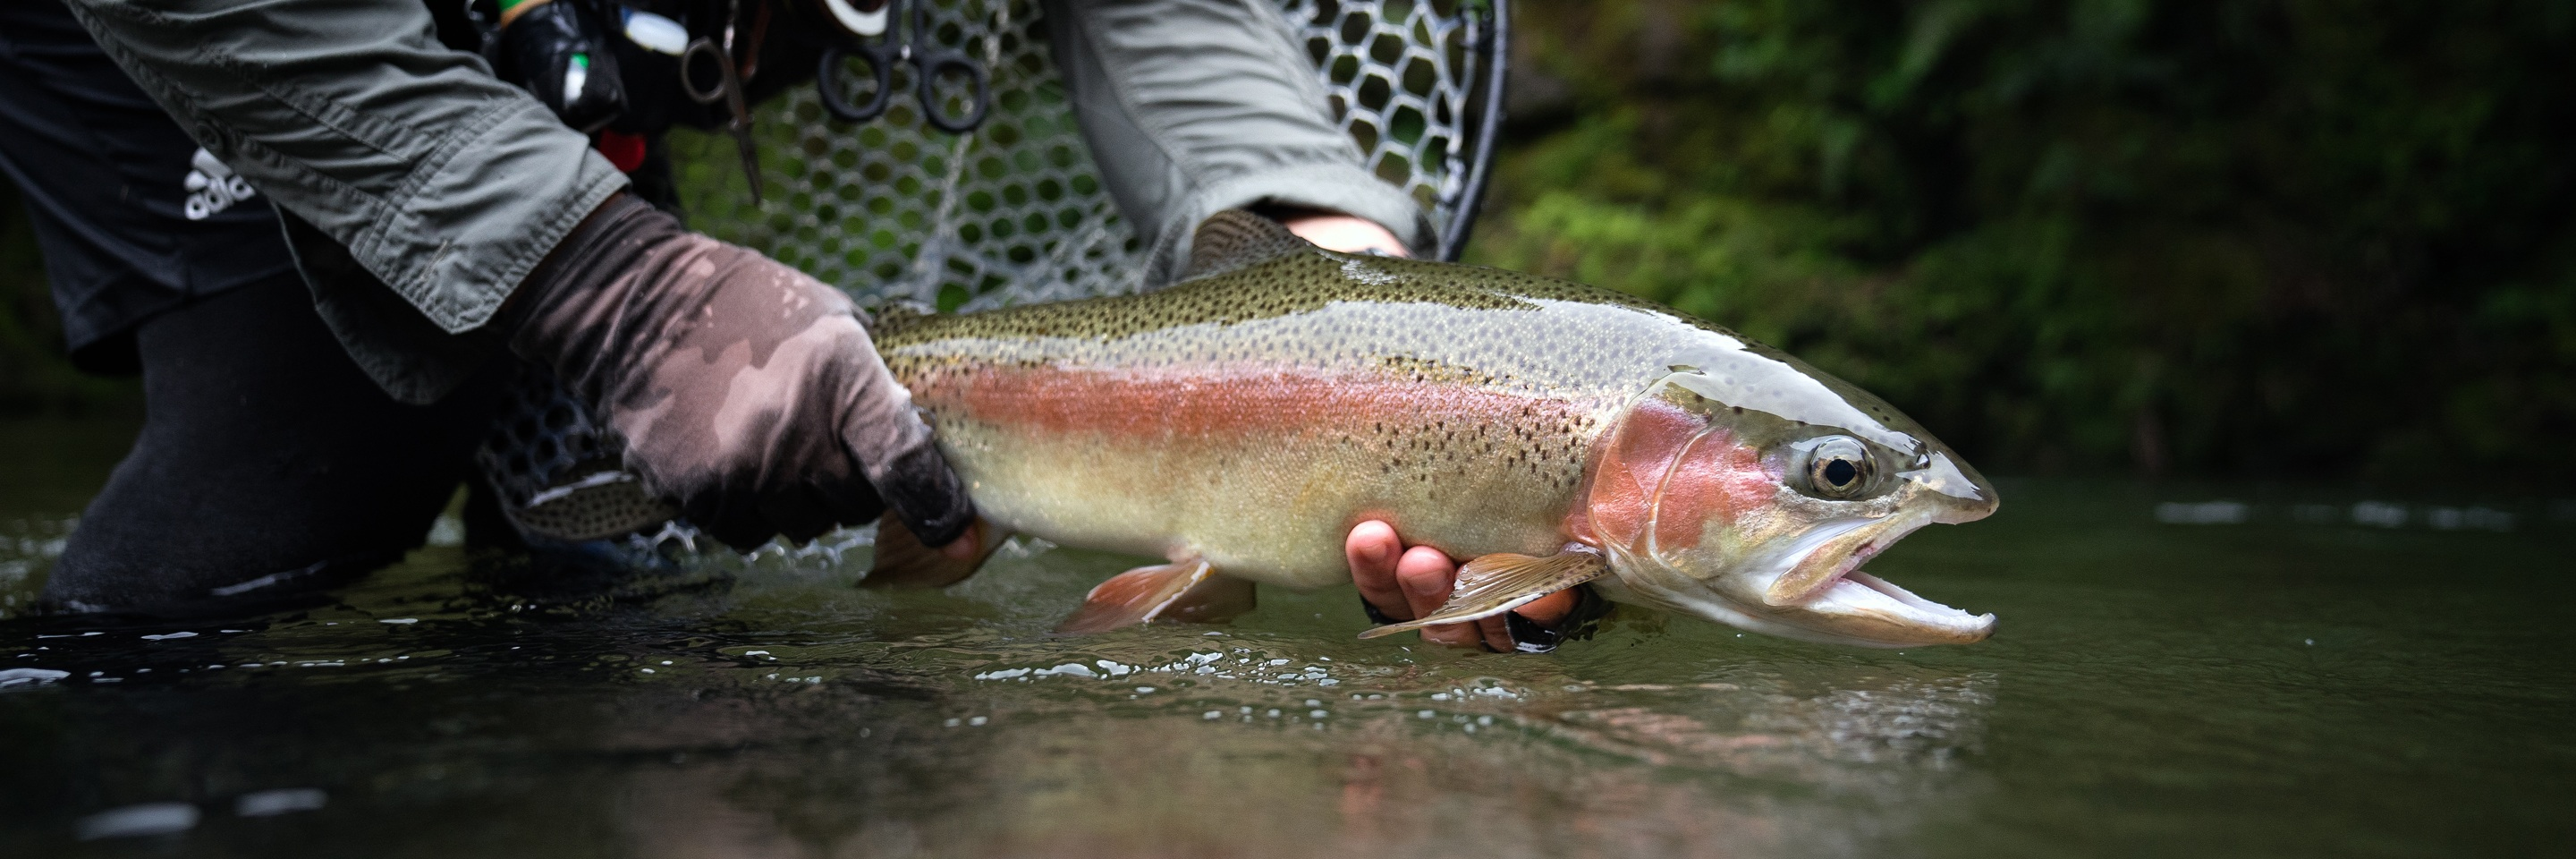 Catch and Release - Best Practice | Poronui